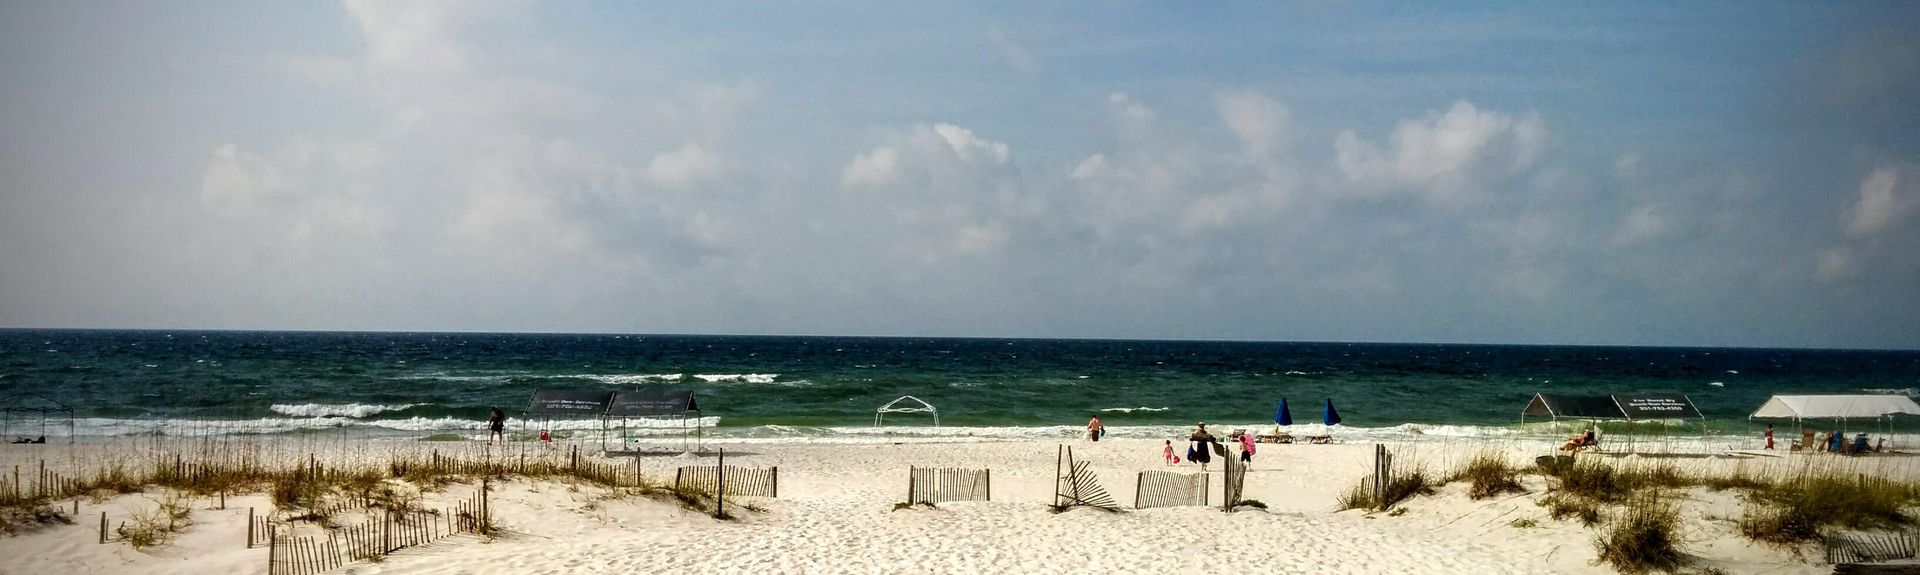 Gulf Shores Beach, Gulf Shores, Alabama, United States of America